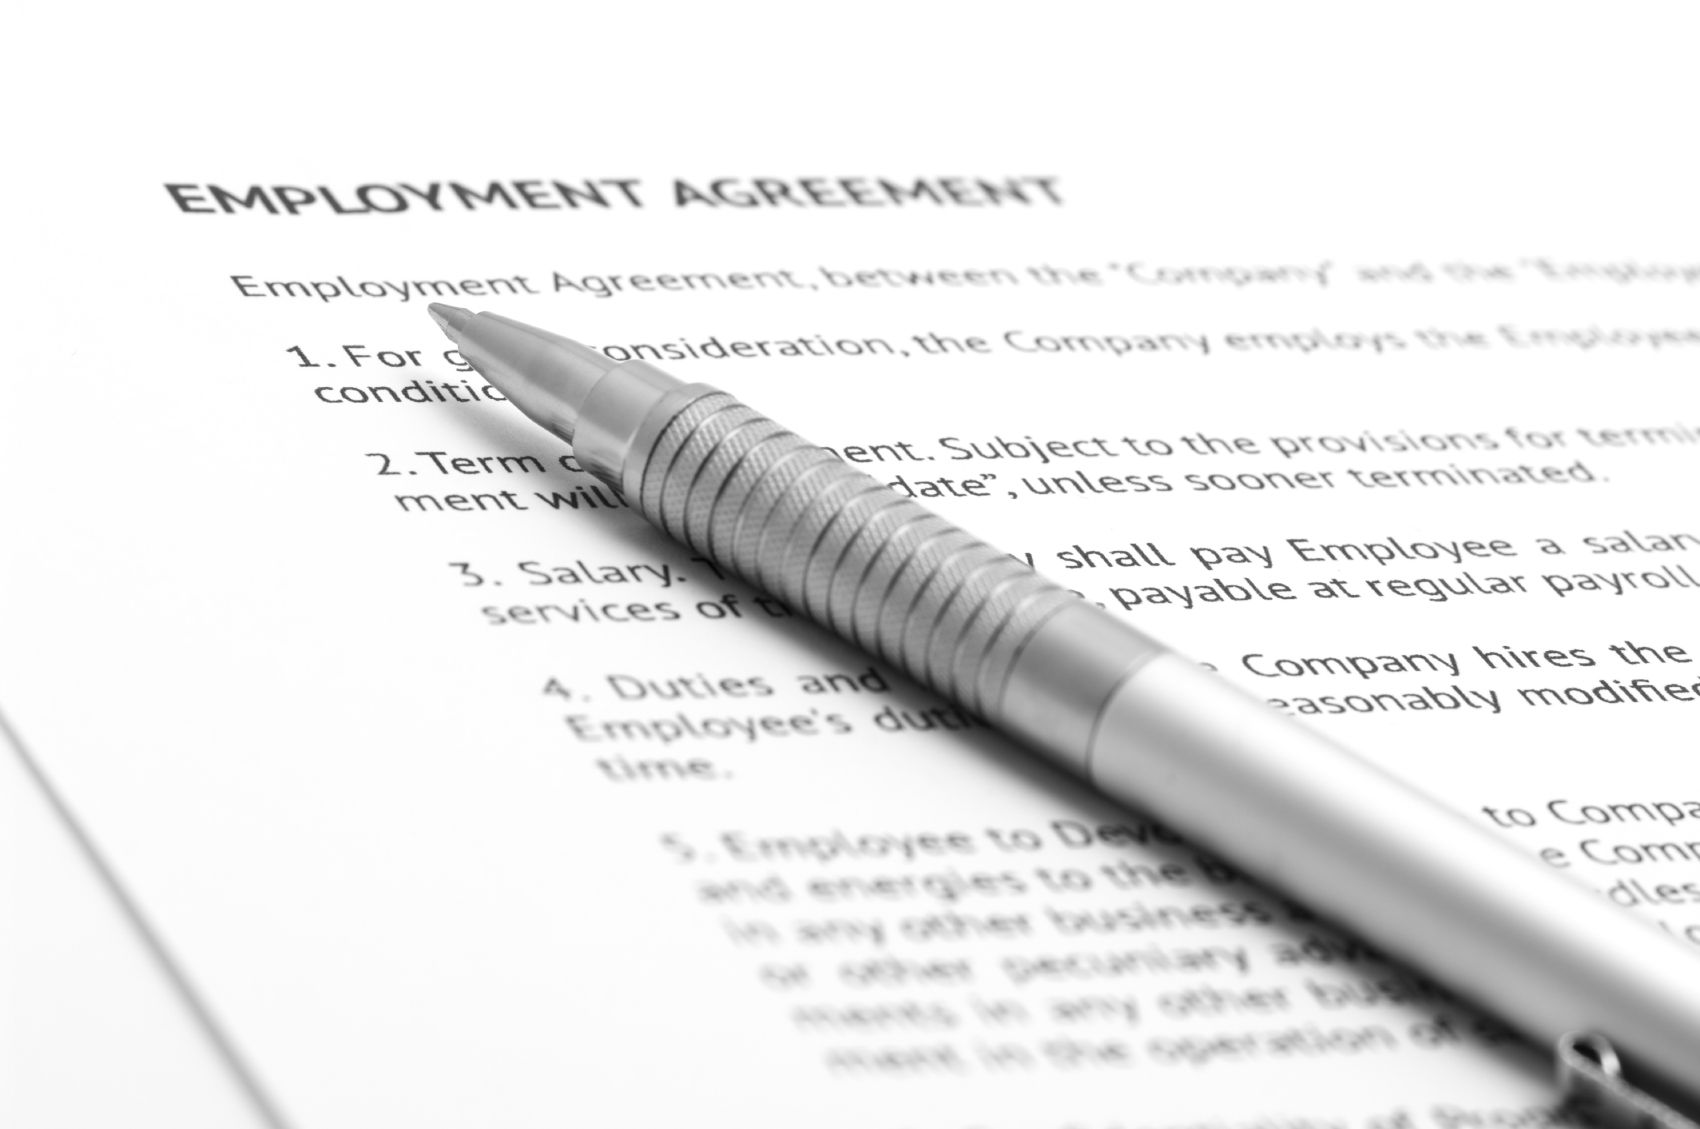 A NonCompete Agreement Is A Document In Which An Employee Agrees